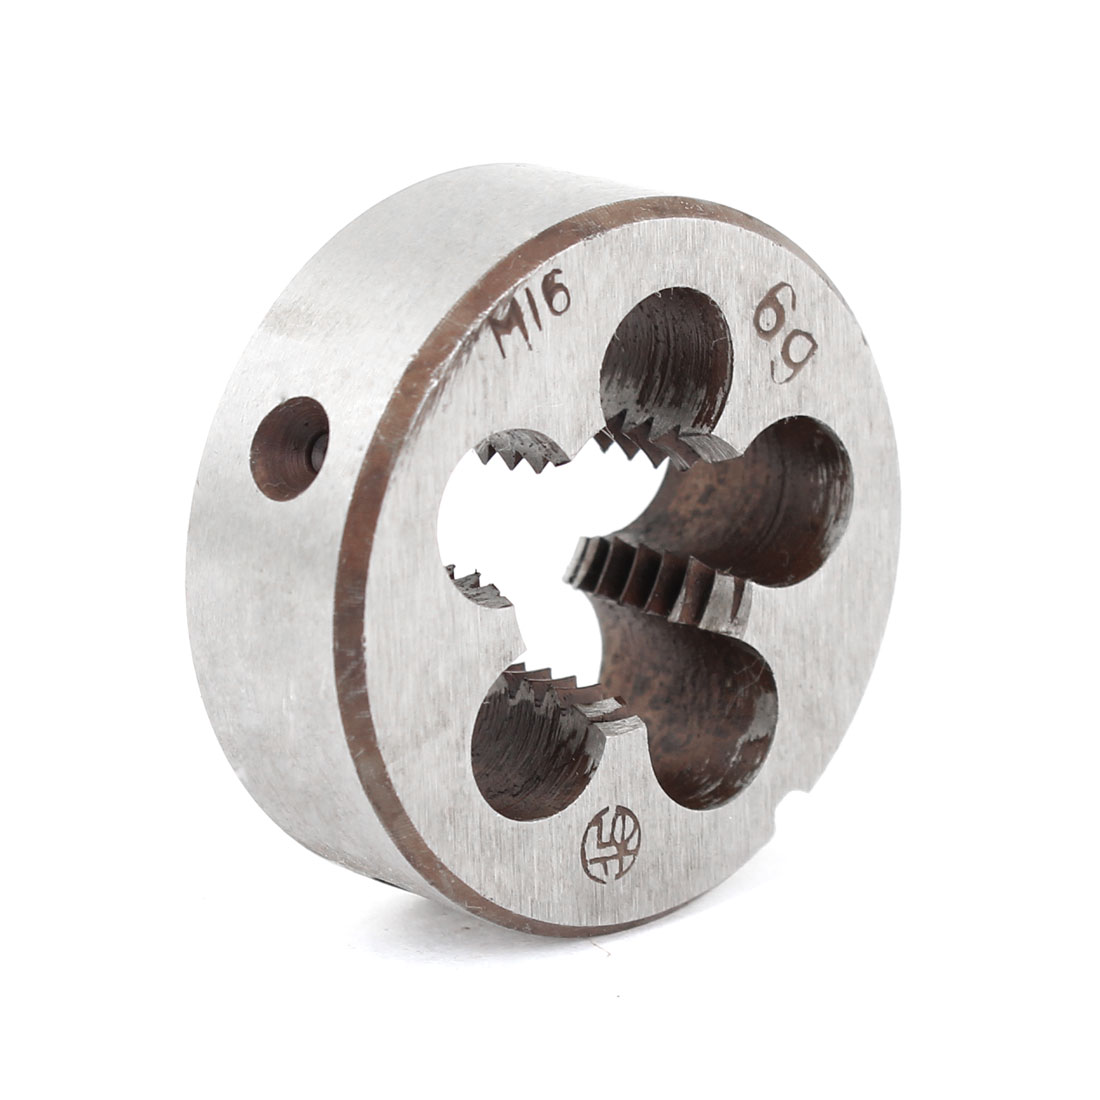 38mm Outside Dia M16 Nominal Dia Cutting Tool Thread Round Die